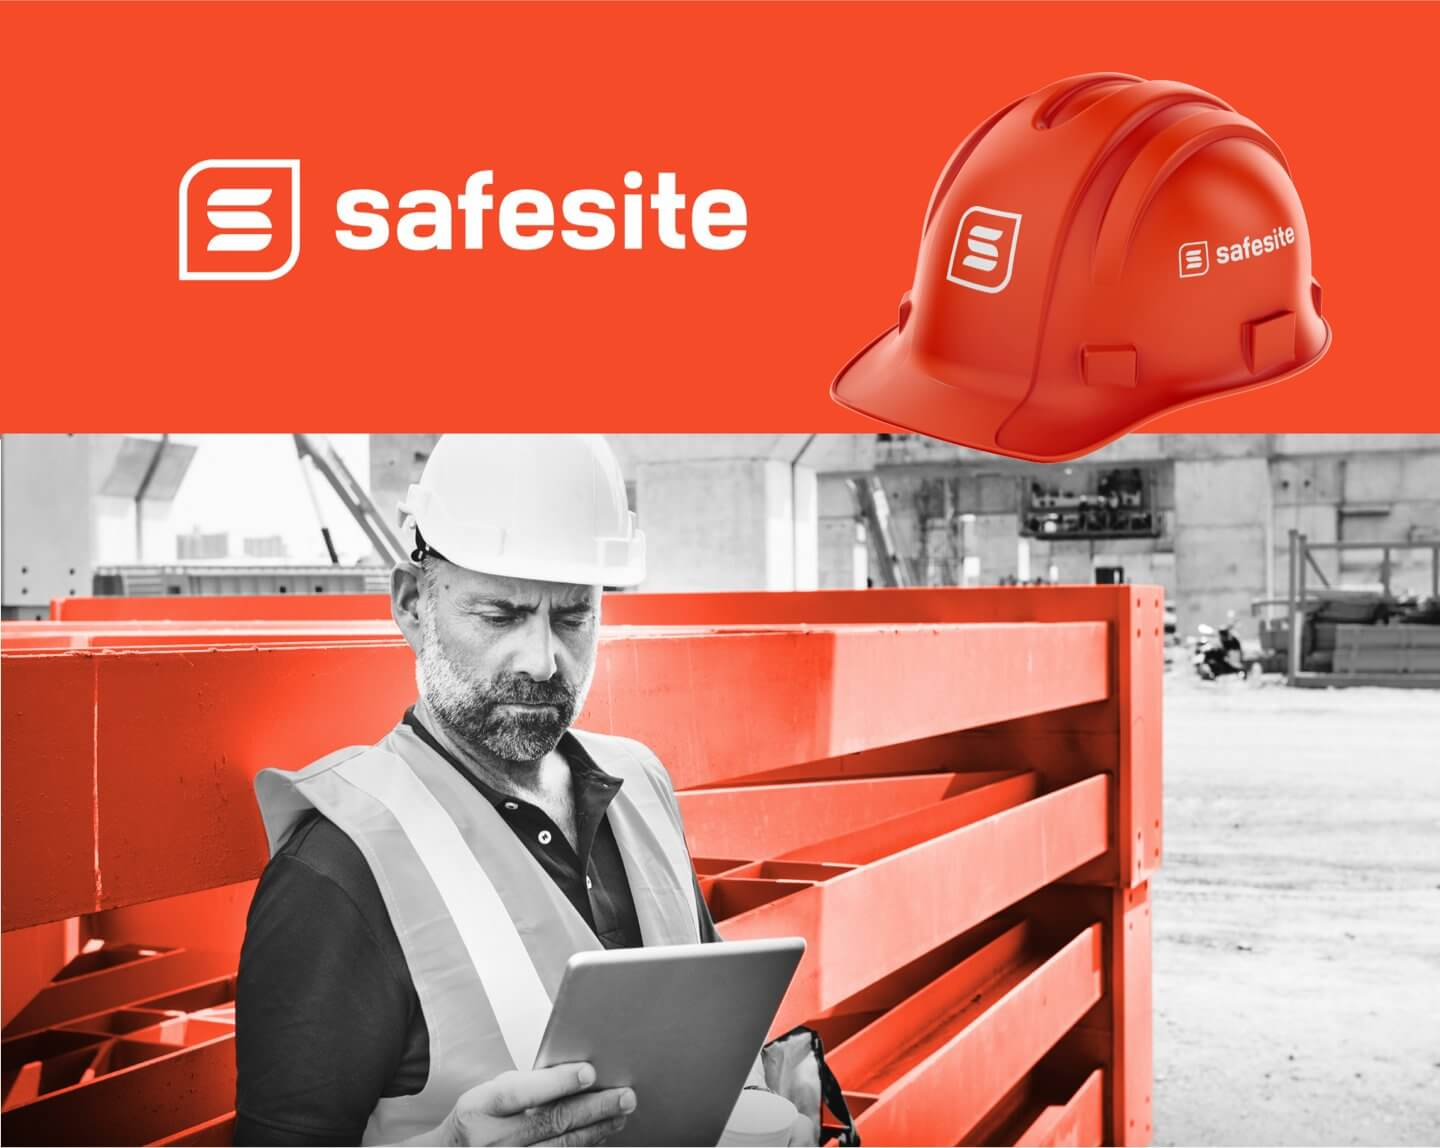 Safesite logo design and visual identity